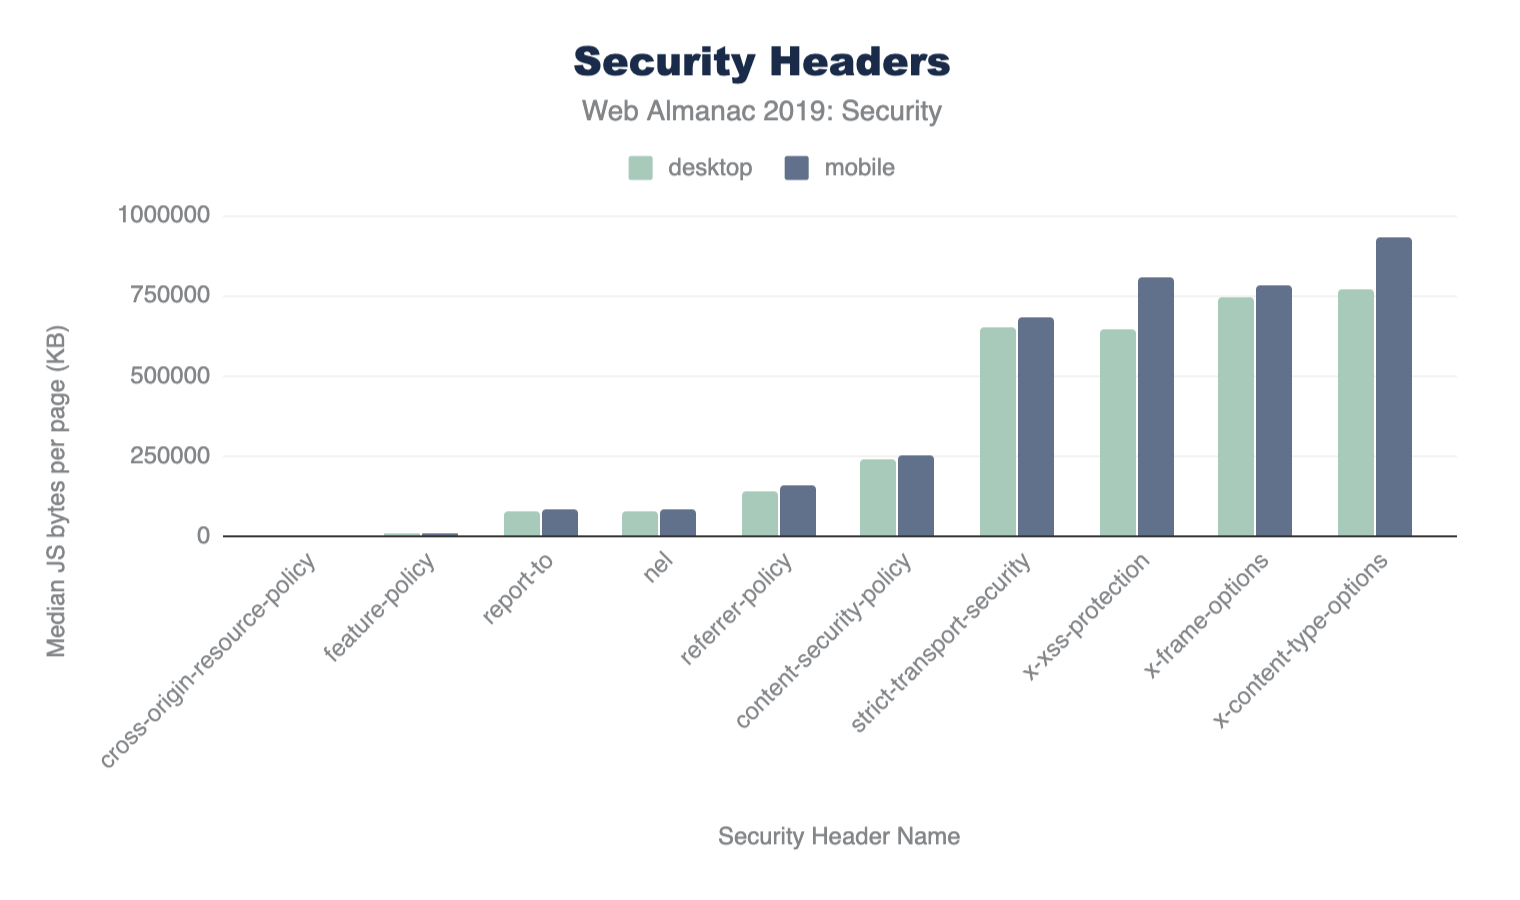 Figure 8. Usage of Security Headers